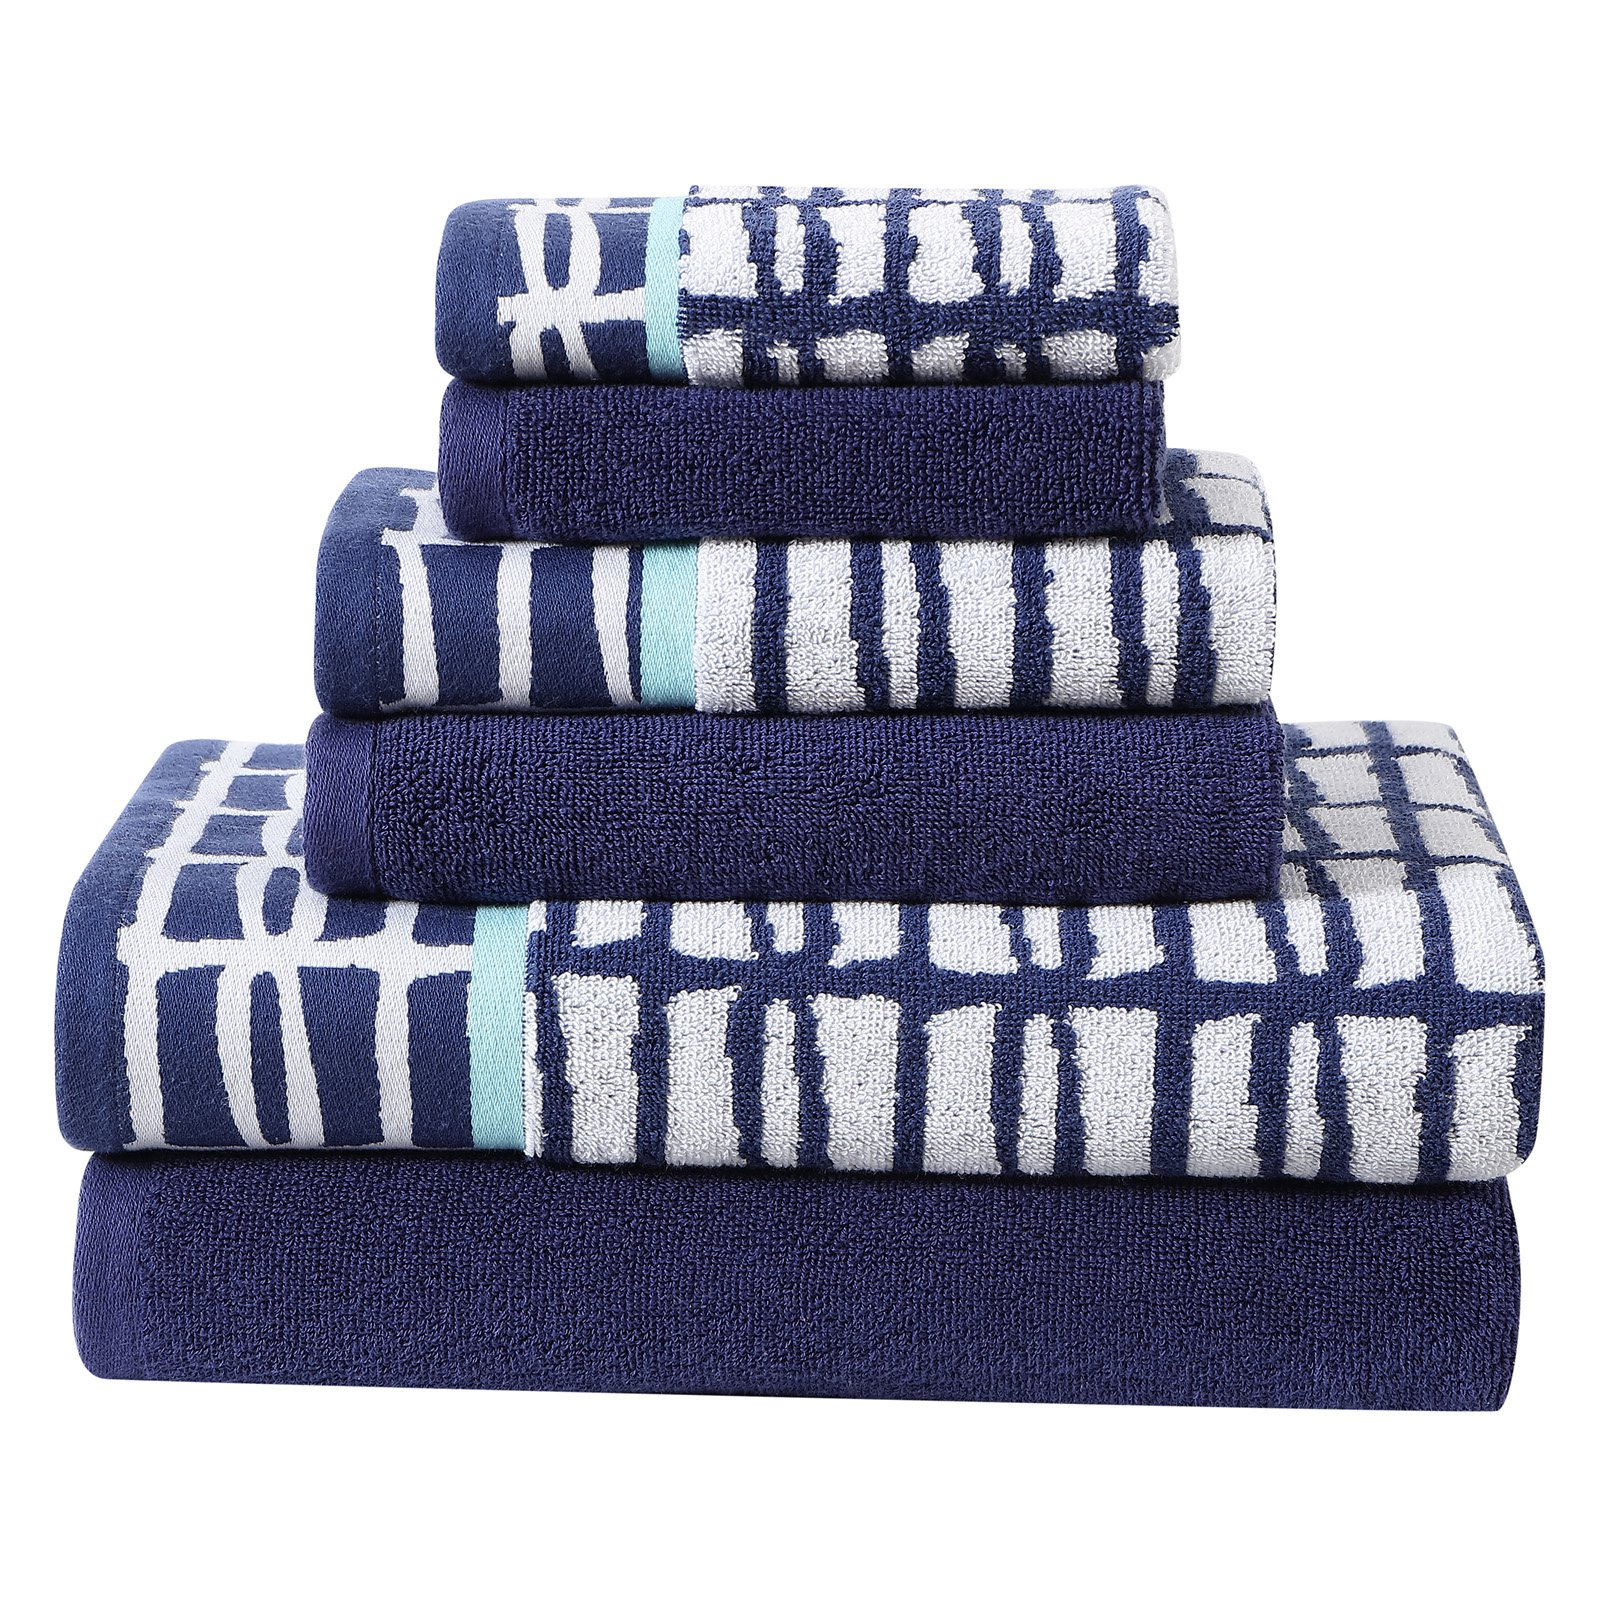 Clairebella Multi-Color Cubish 6-Piece Printed and Solid Towel Set by VCNY Home